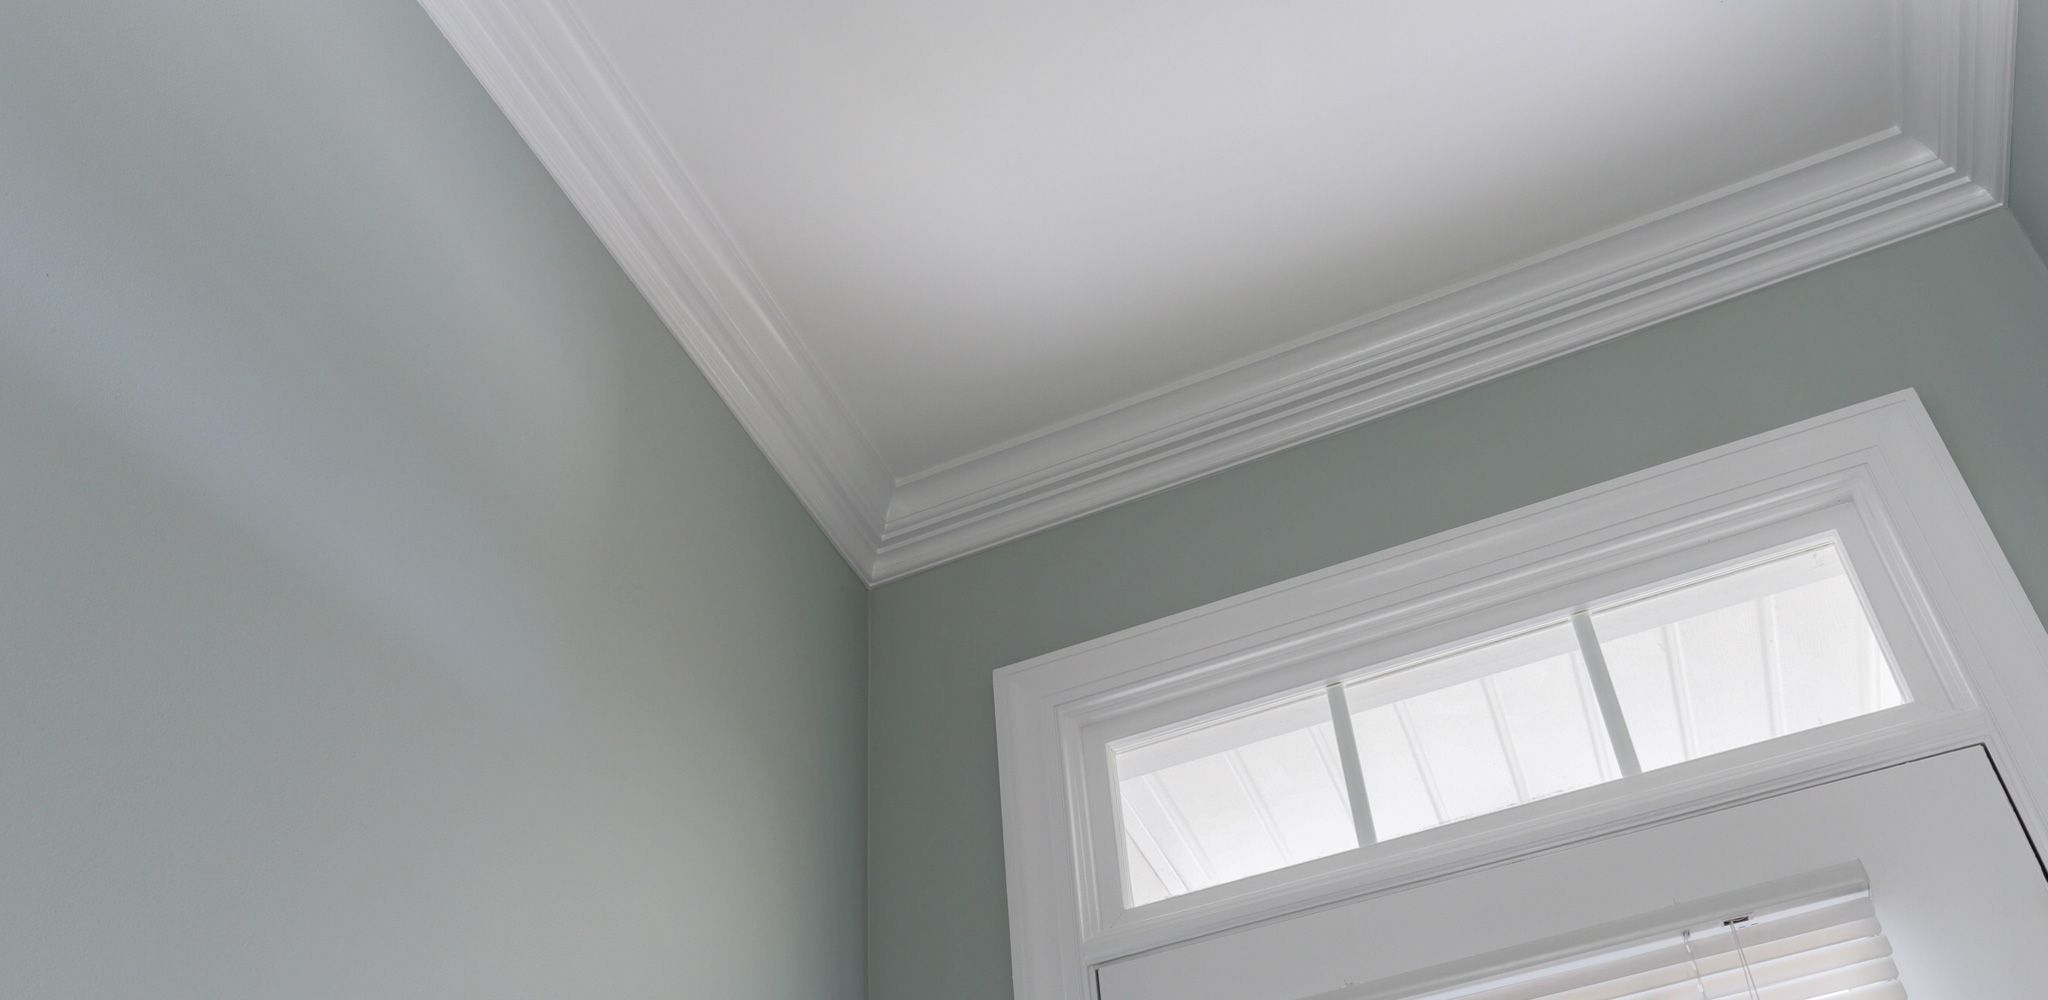 Notice the attention to detail and sharp painting of the crown molding, front door and door casing.